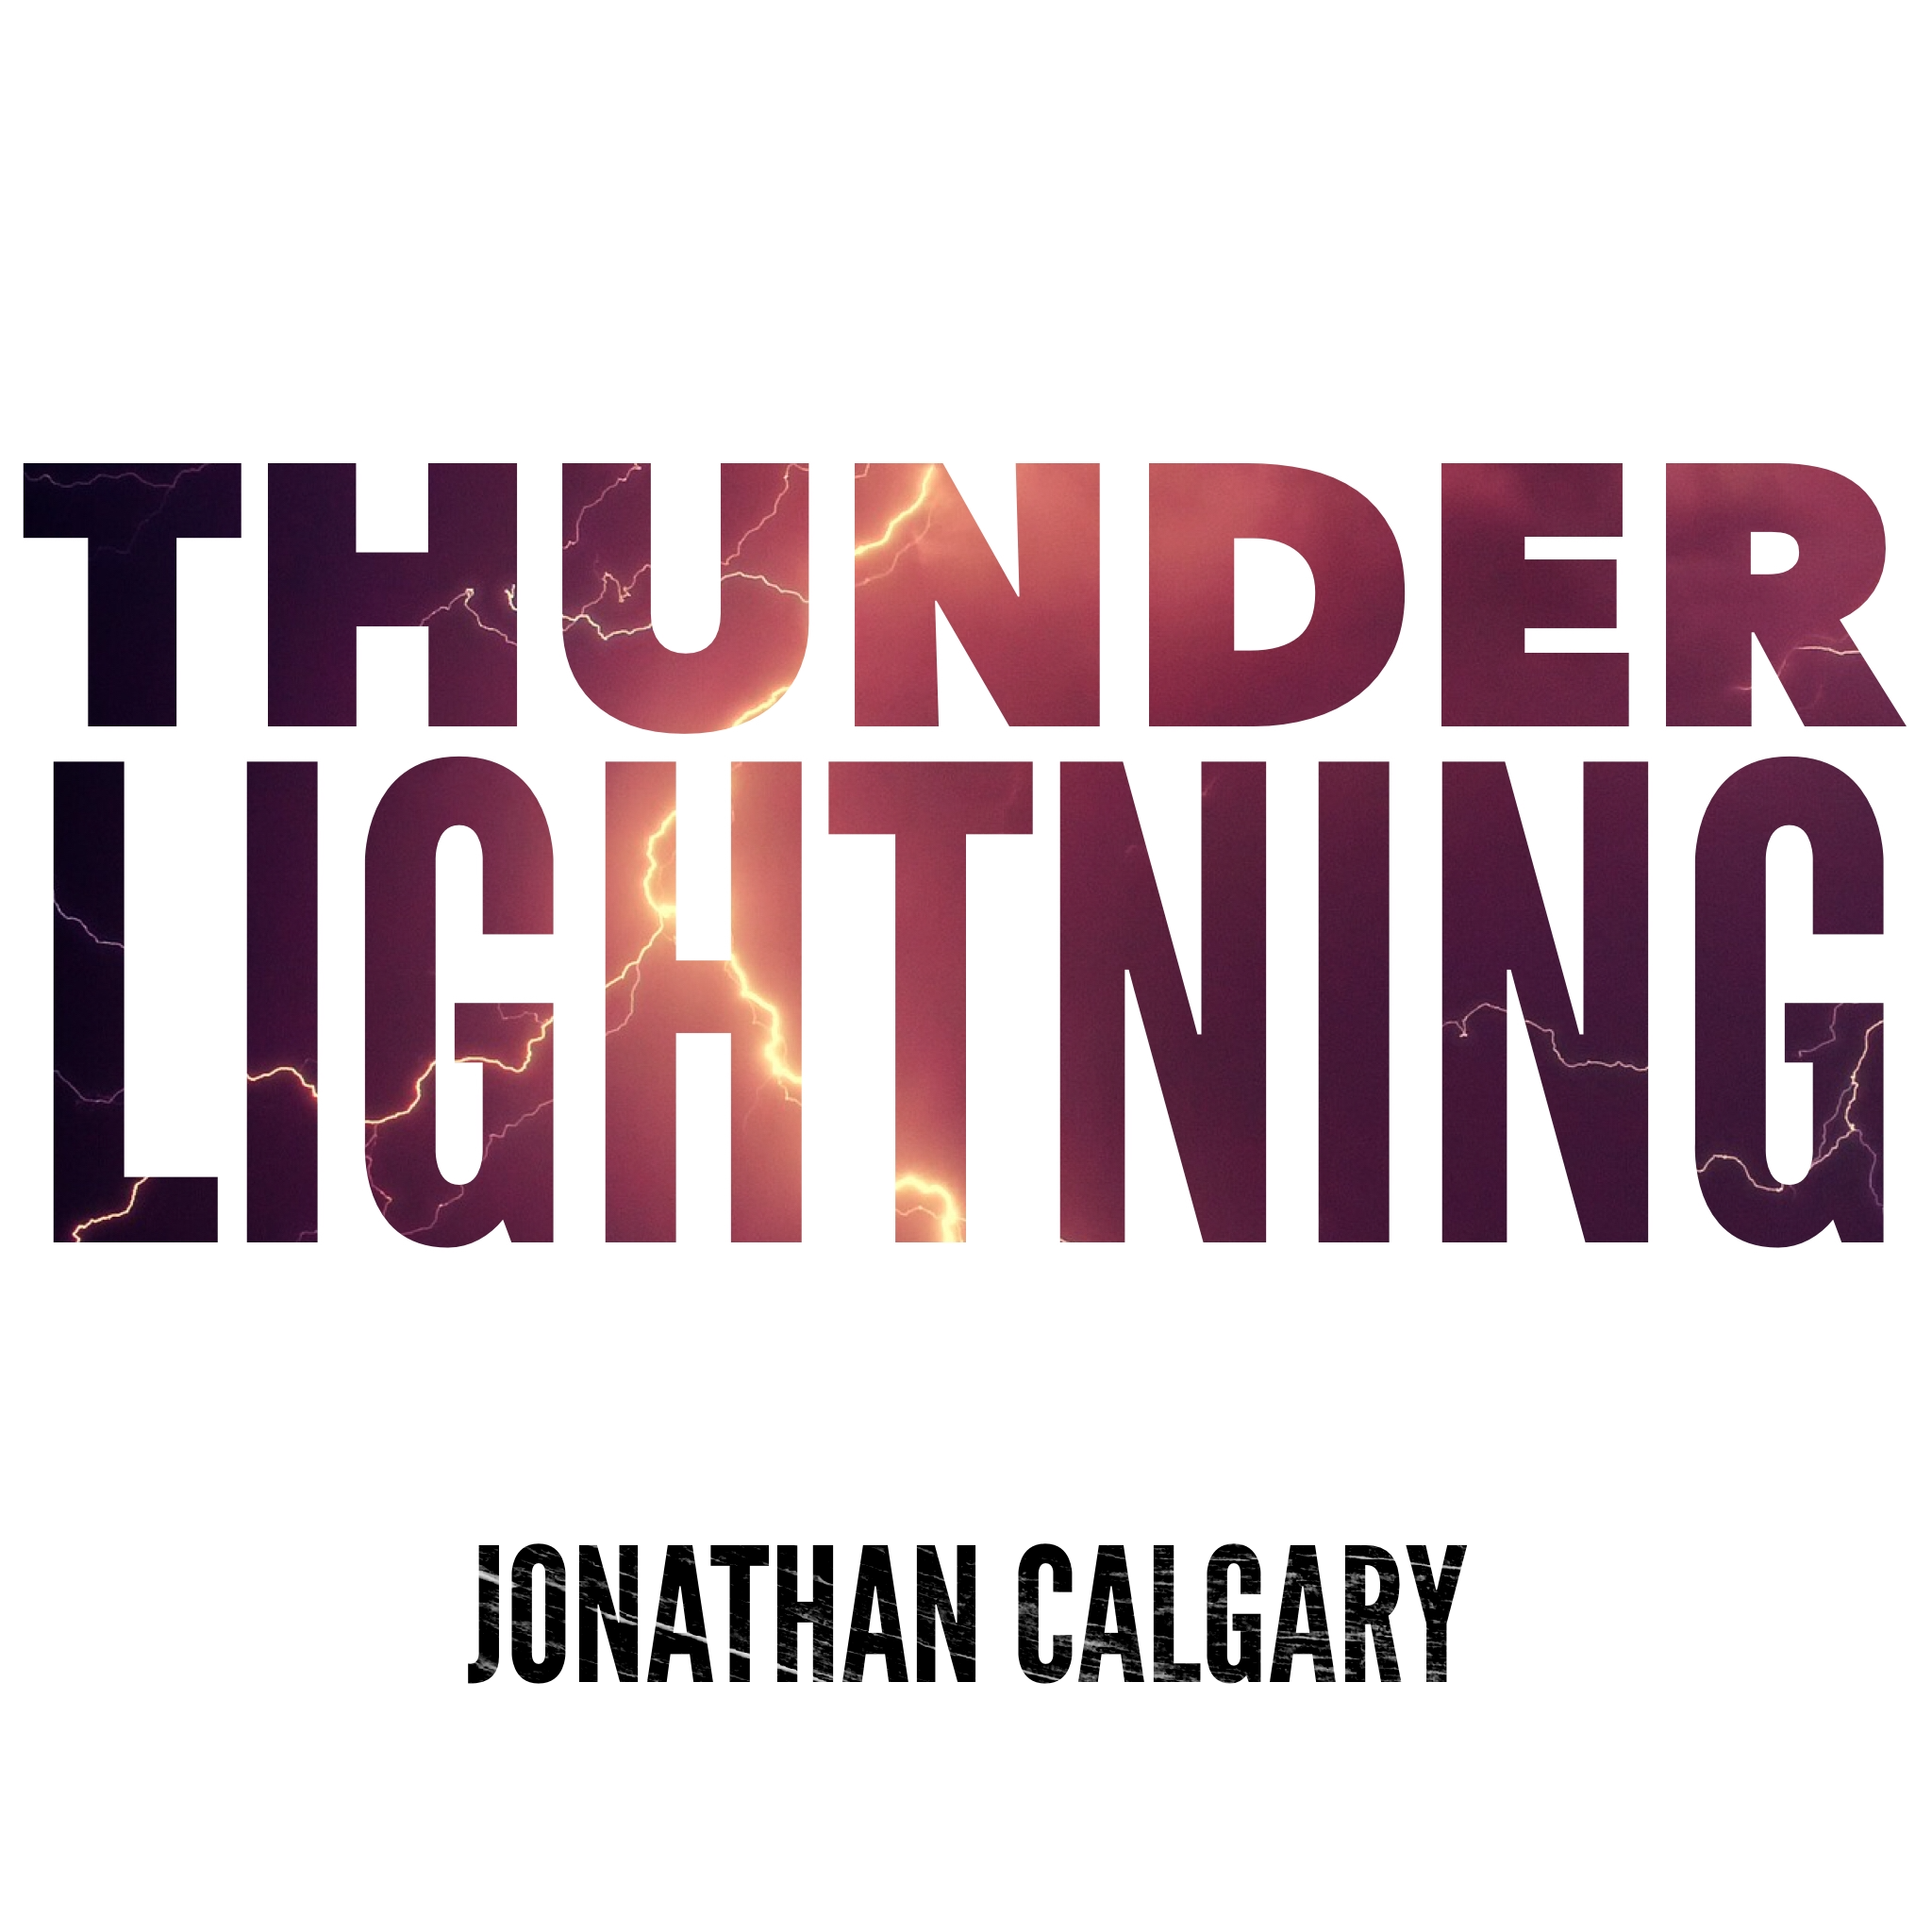 JONATHAN CALGARY    CREDITS: WRITER, PRODUCER, MIXING & MASTERING     LISTEN NOW